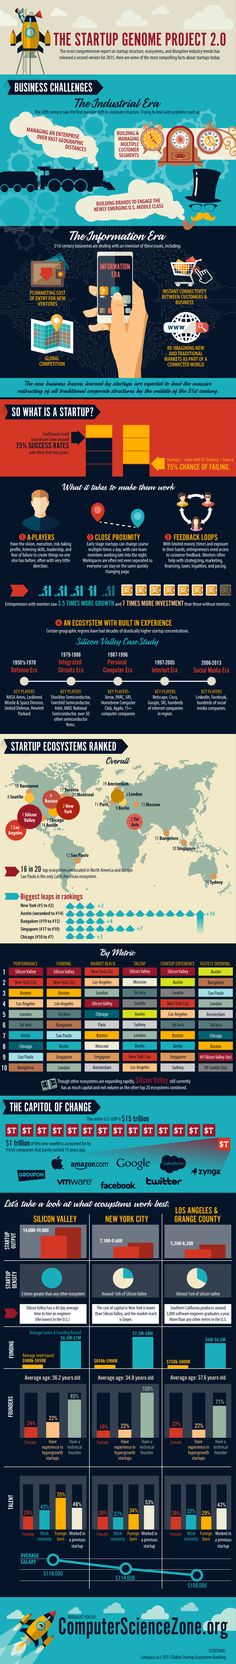 Startup Genome Project Compares Global Ecosystems [INFOGRAPHIC]